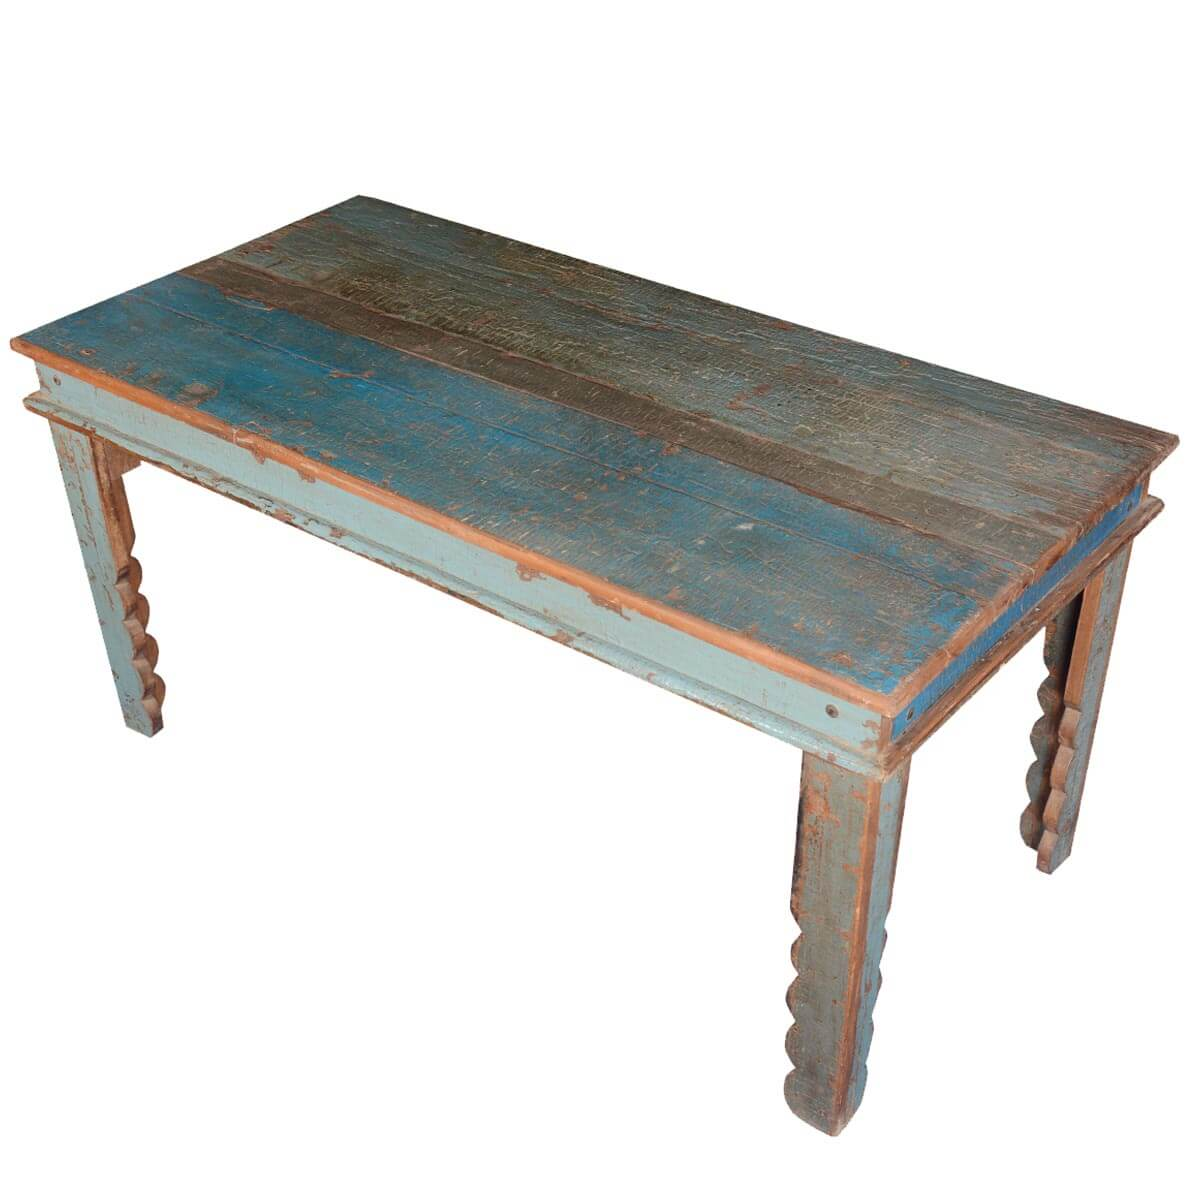 Rustic Farmhouse Reclaimed Wood Blue Kitchen Table : 63904 from www.sierralivingconcepts.com size 1200 x 1200 jpeg 137kB